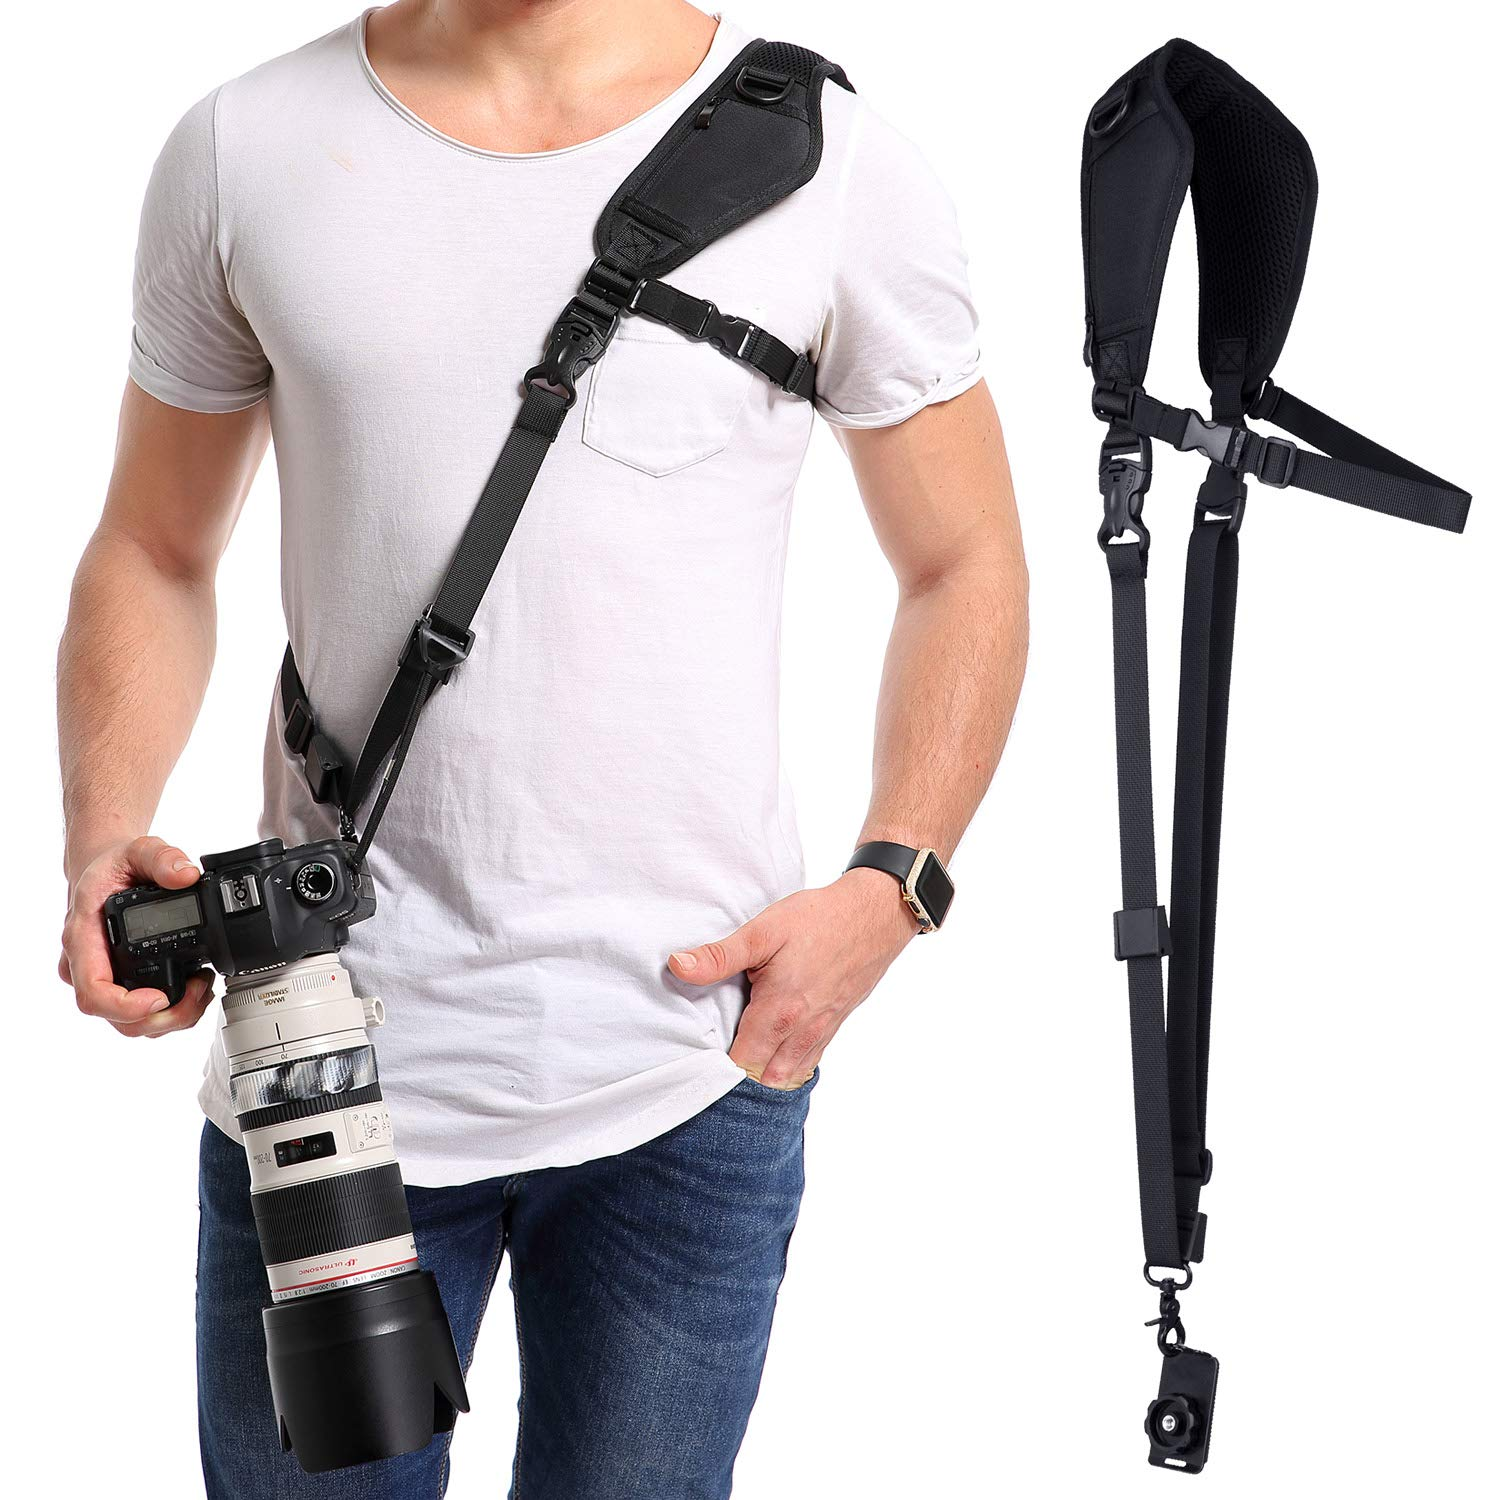 waka Camera Neck Strap with Quick Release, Safety Tether and Underarm Strap, Adjustable Camera Shoulder Sling Strap for Nikon Canon Sony Fuji DSLR Camera, Black by waka